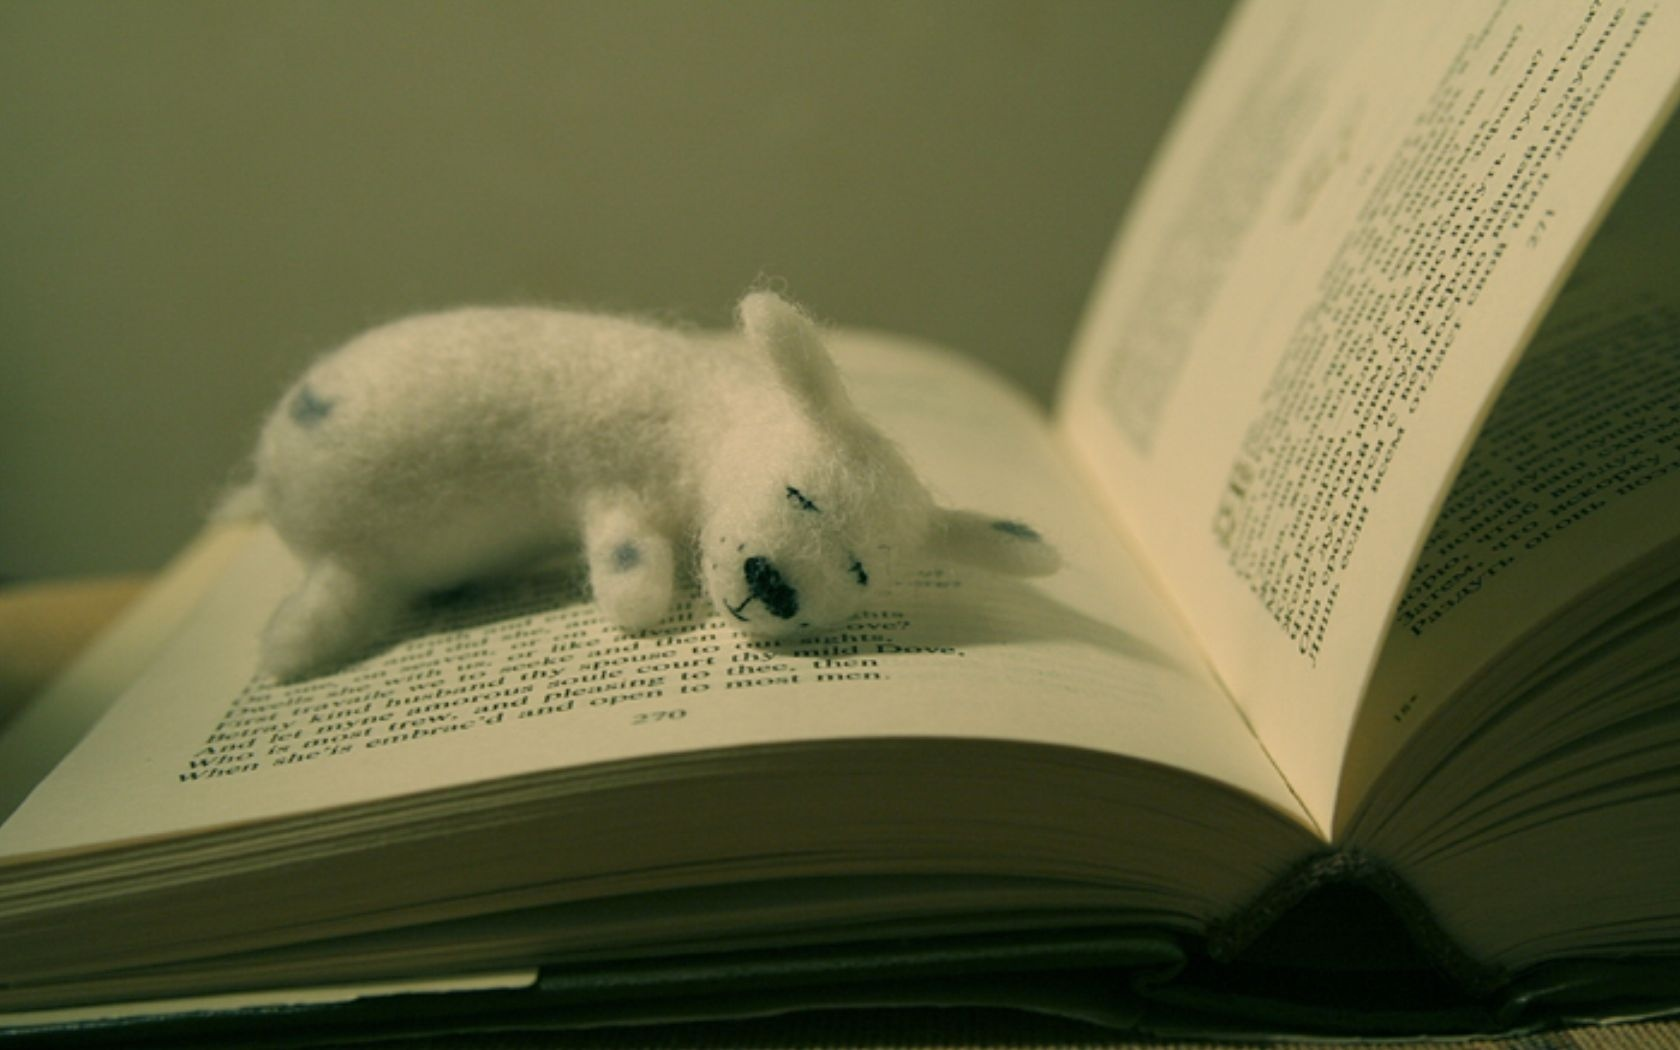 toy, book, page